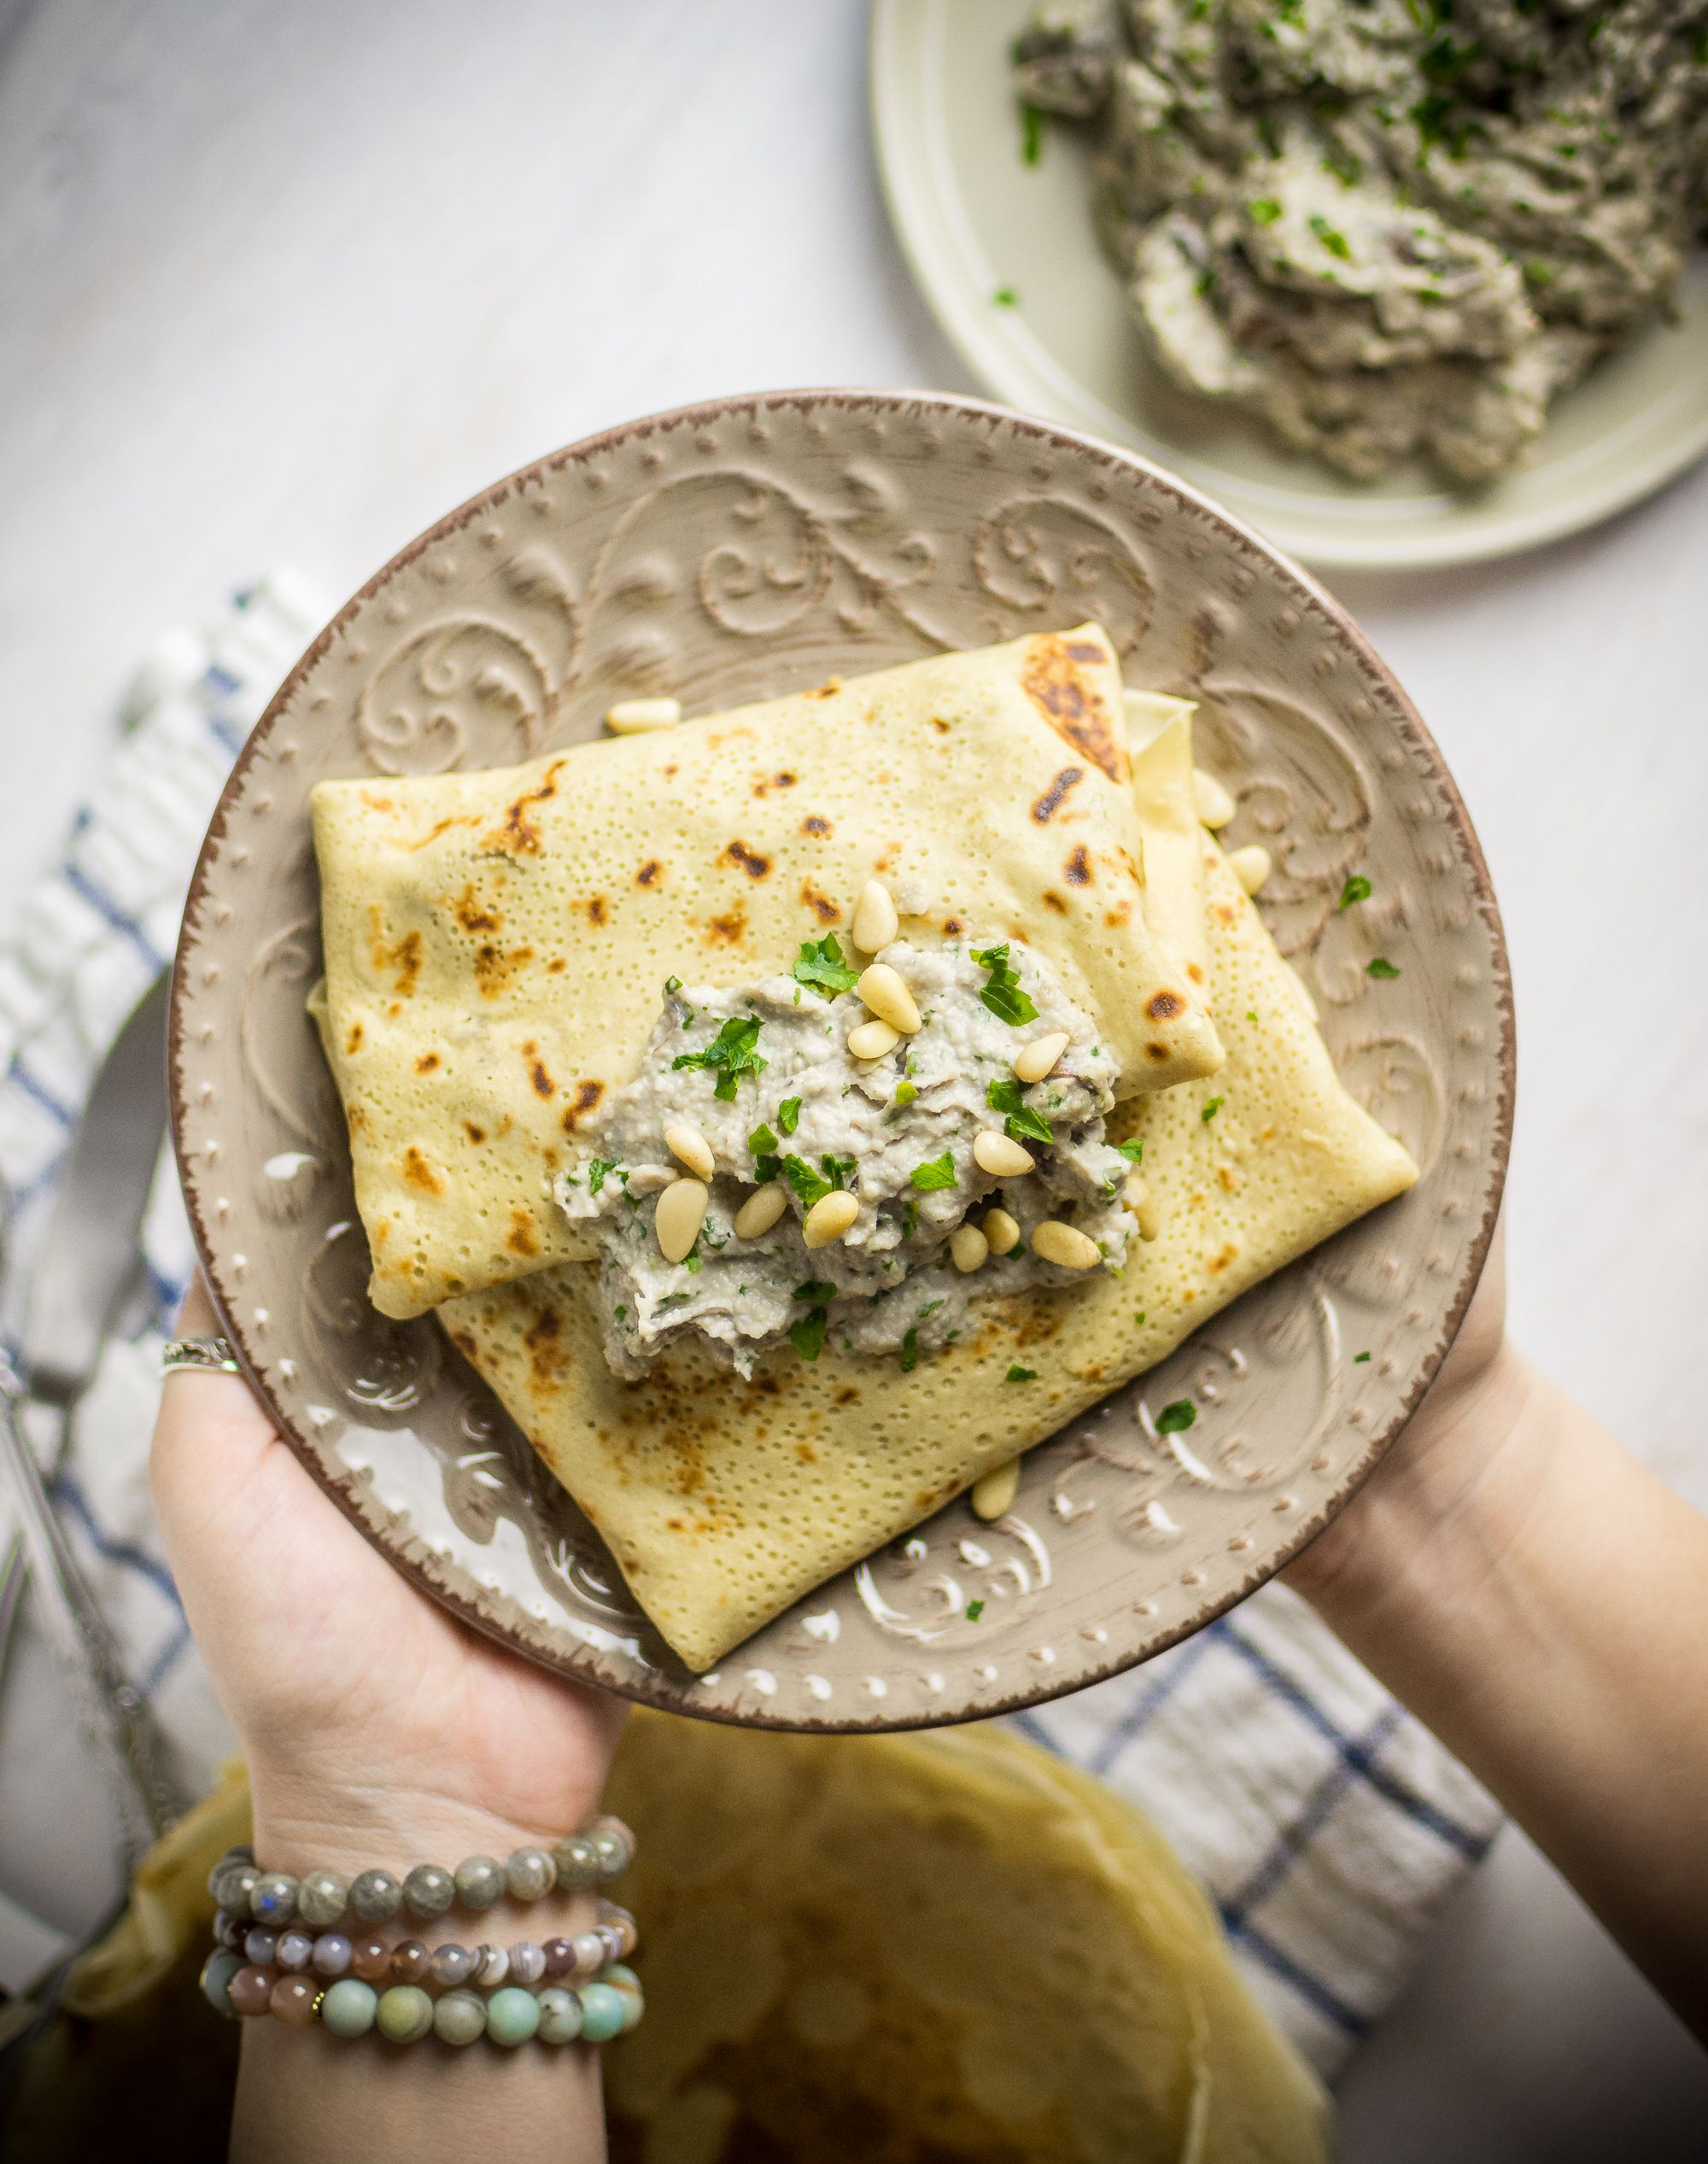 Savory Mushroom Crepes W Cashew Cream Plant Baked Recipe Savory Crepes Crepe Recipe Savory Savory Crepes Filling